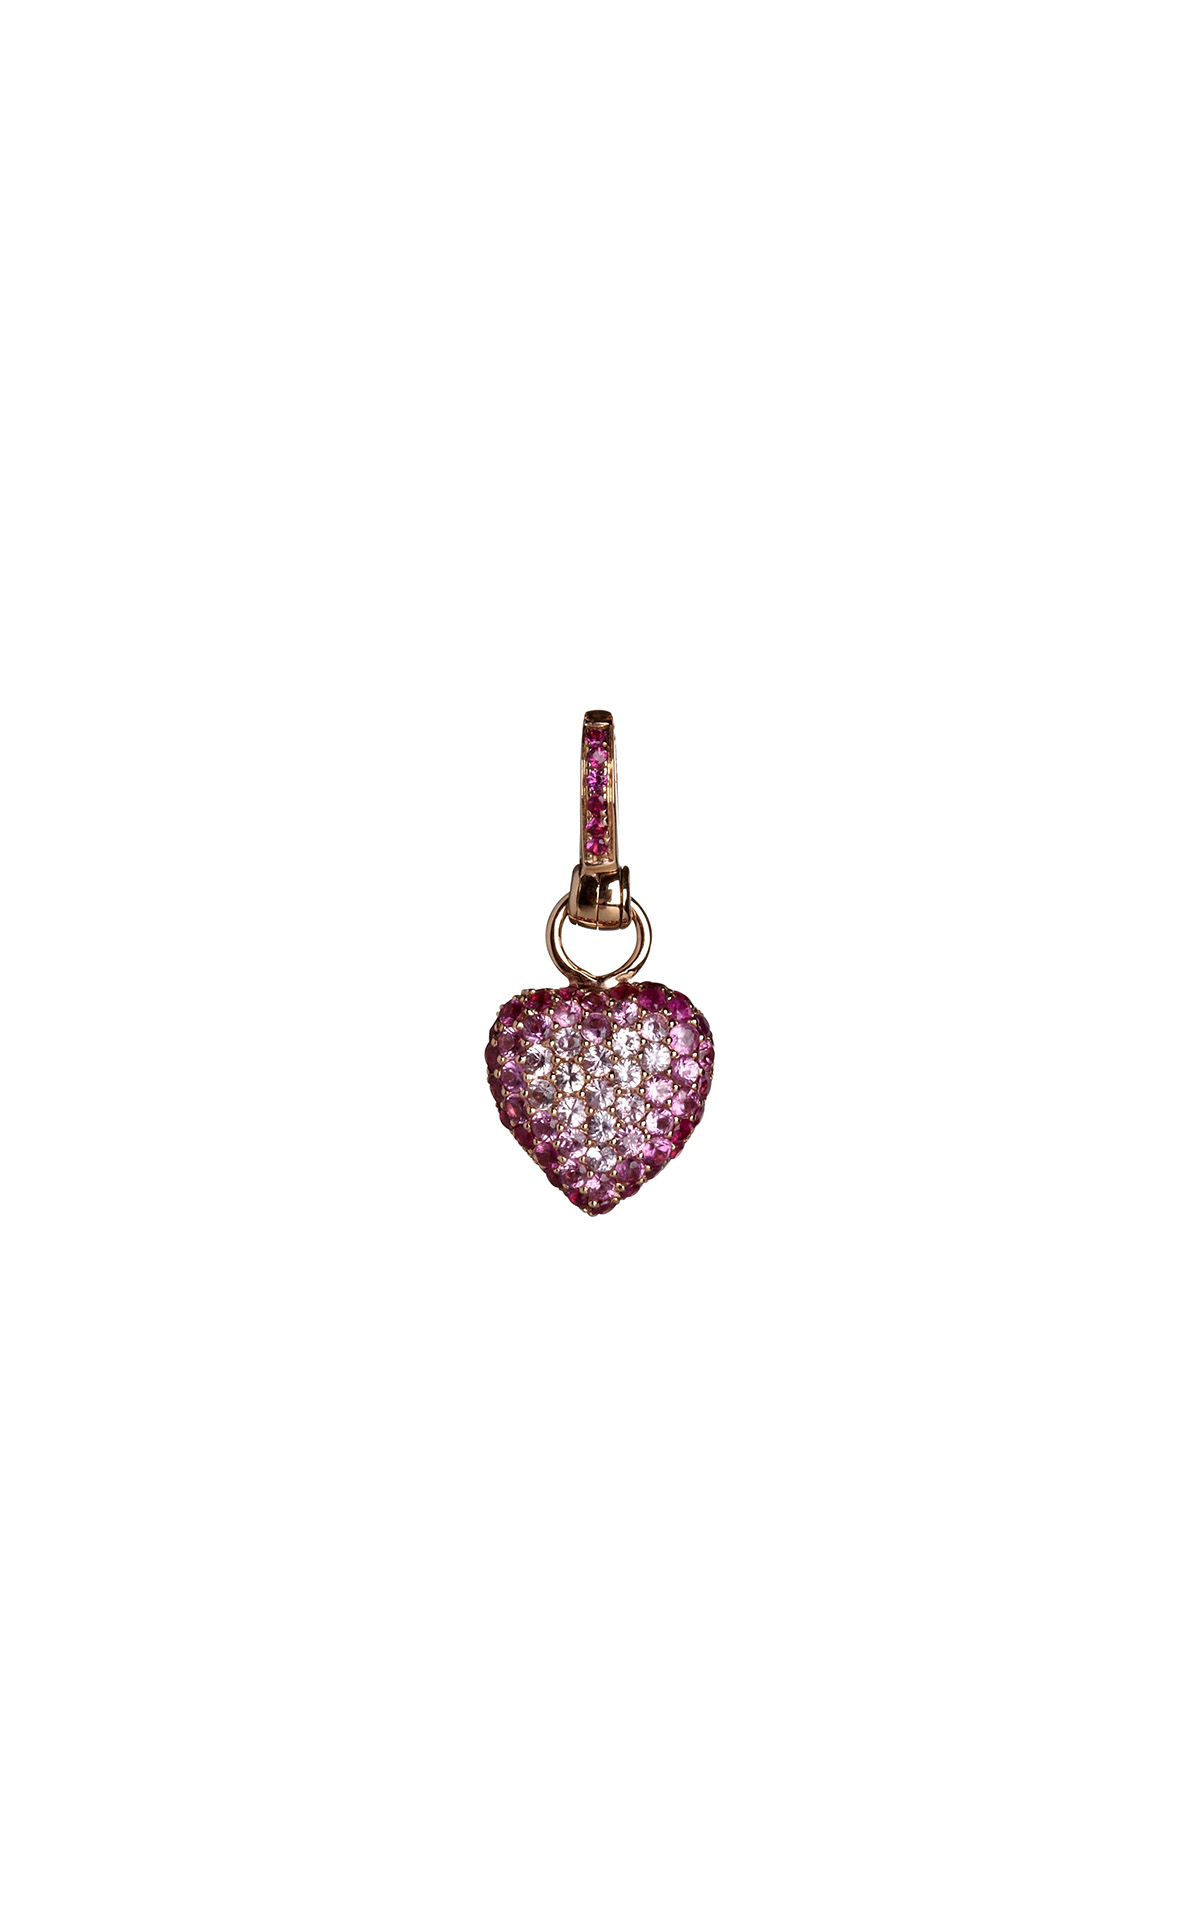 Annoushka Pink sapphire heart charm from Bicester Village